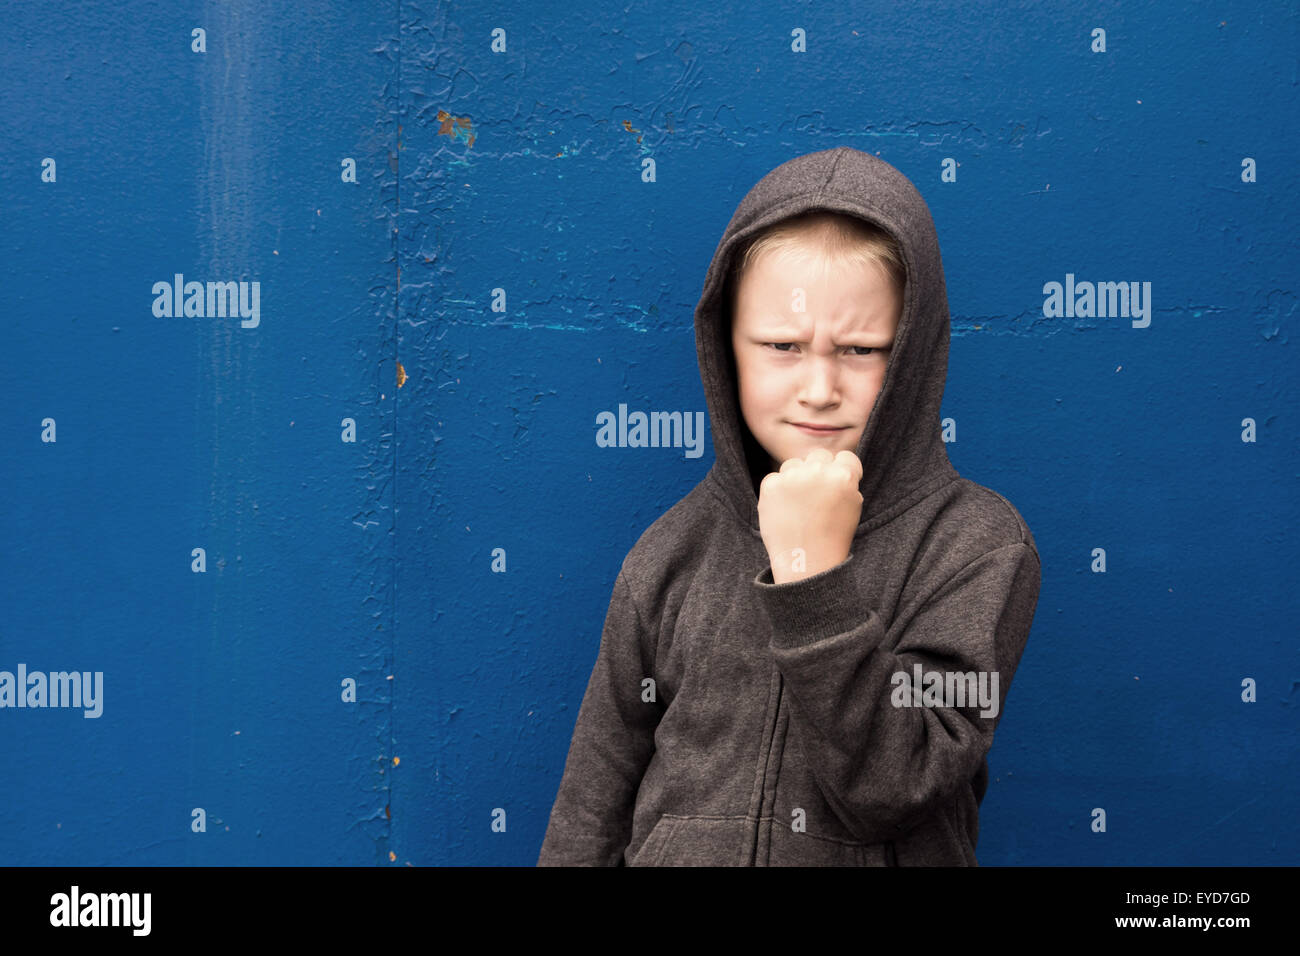 angry aggressive boy (child) shows his fist, threatening - Stock Image